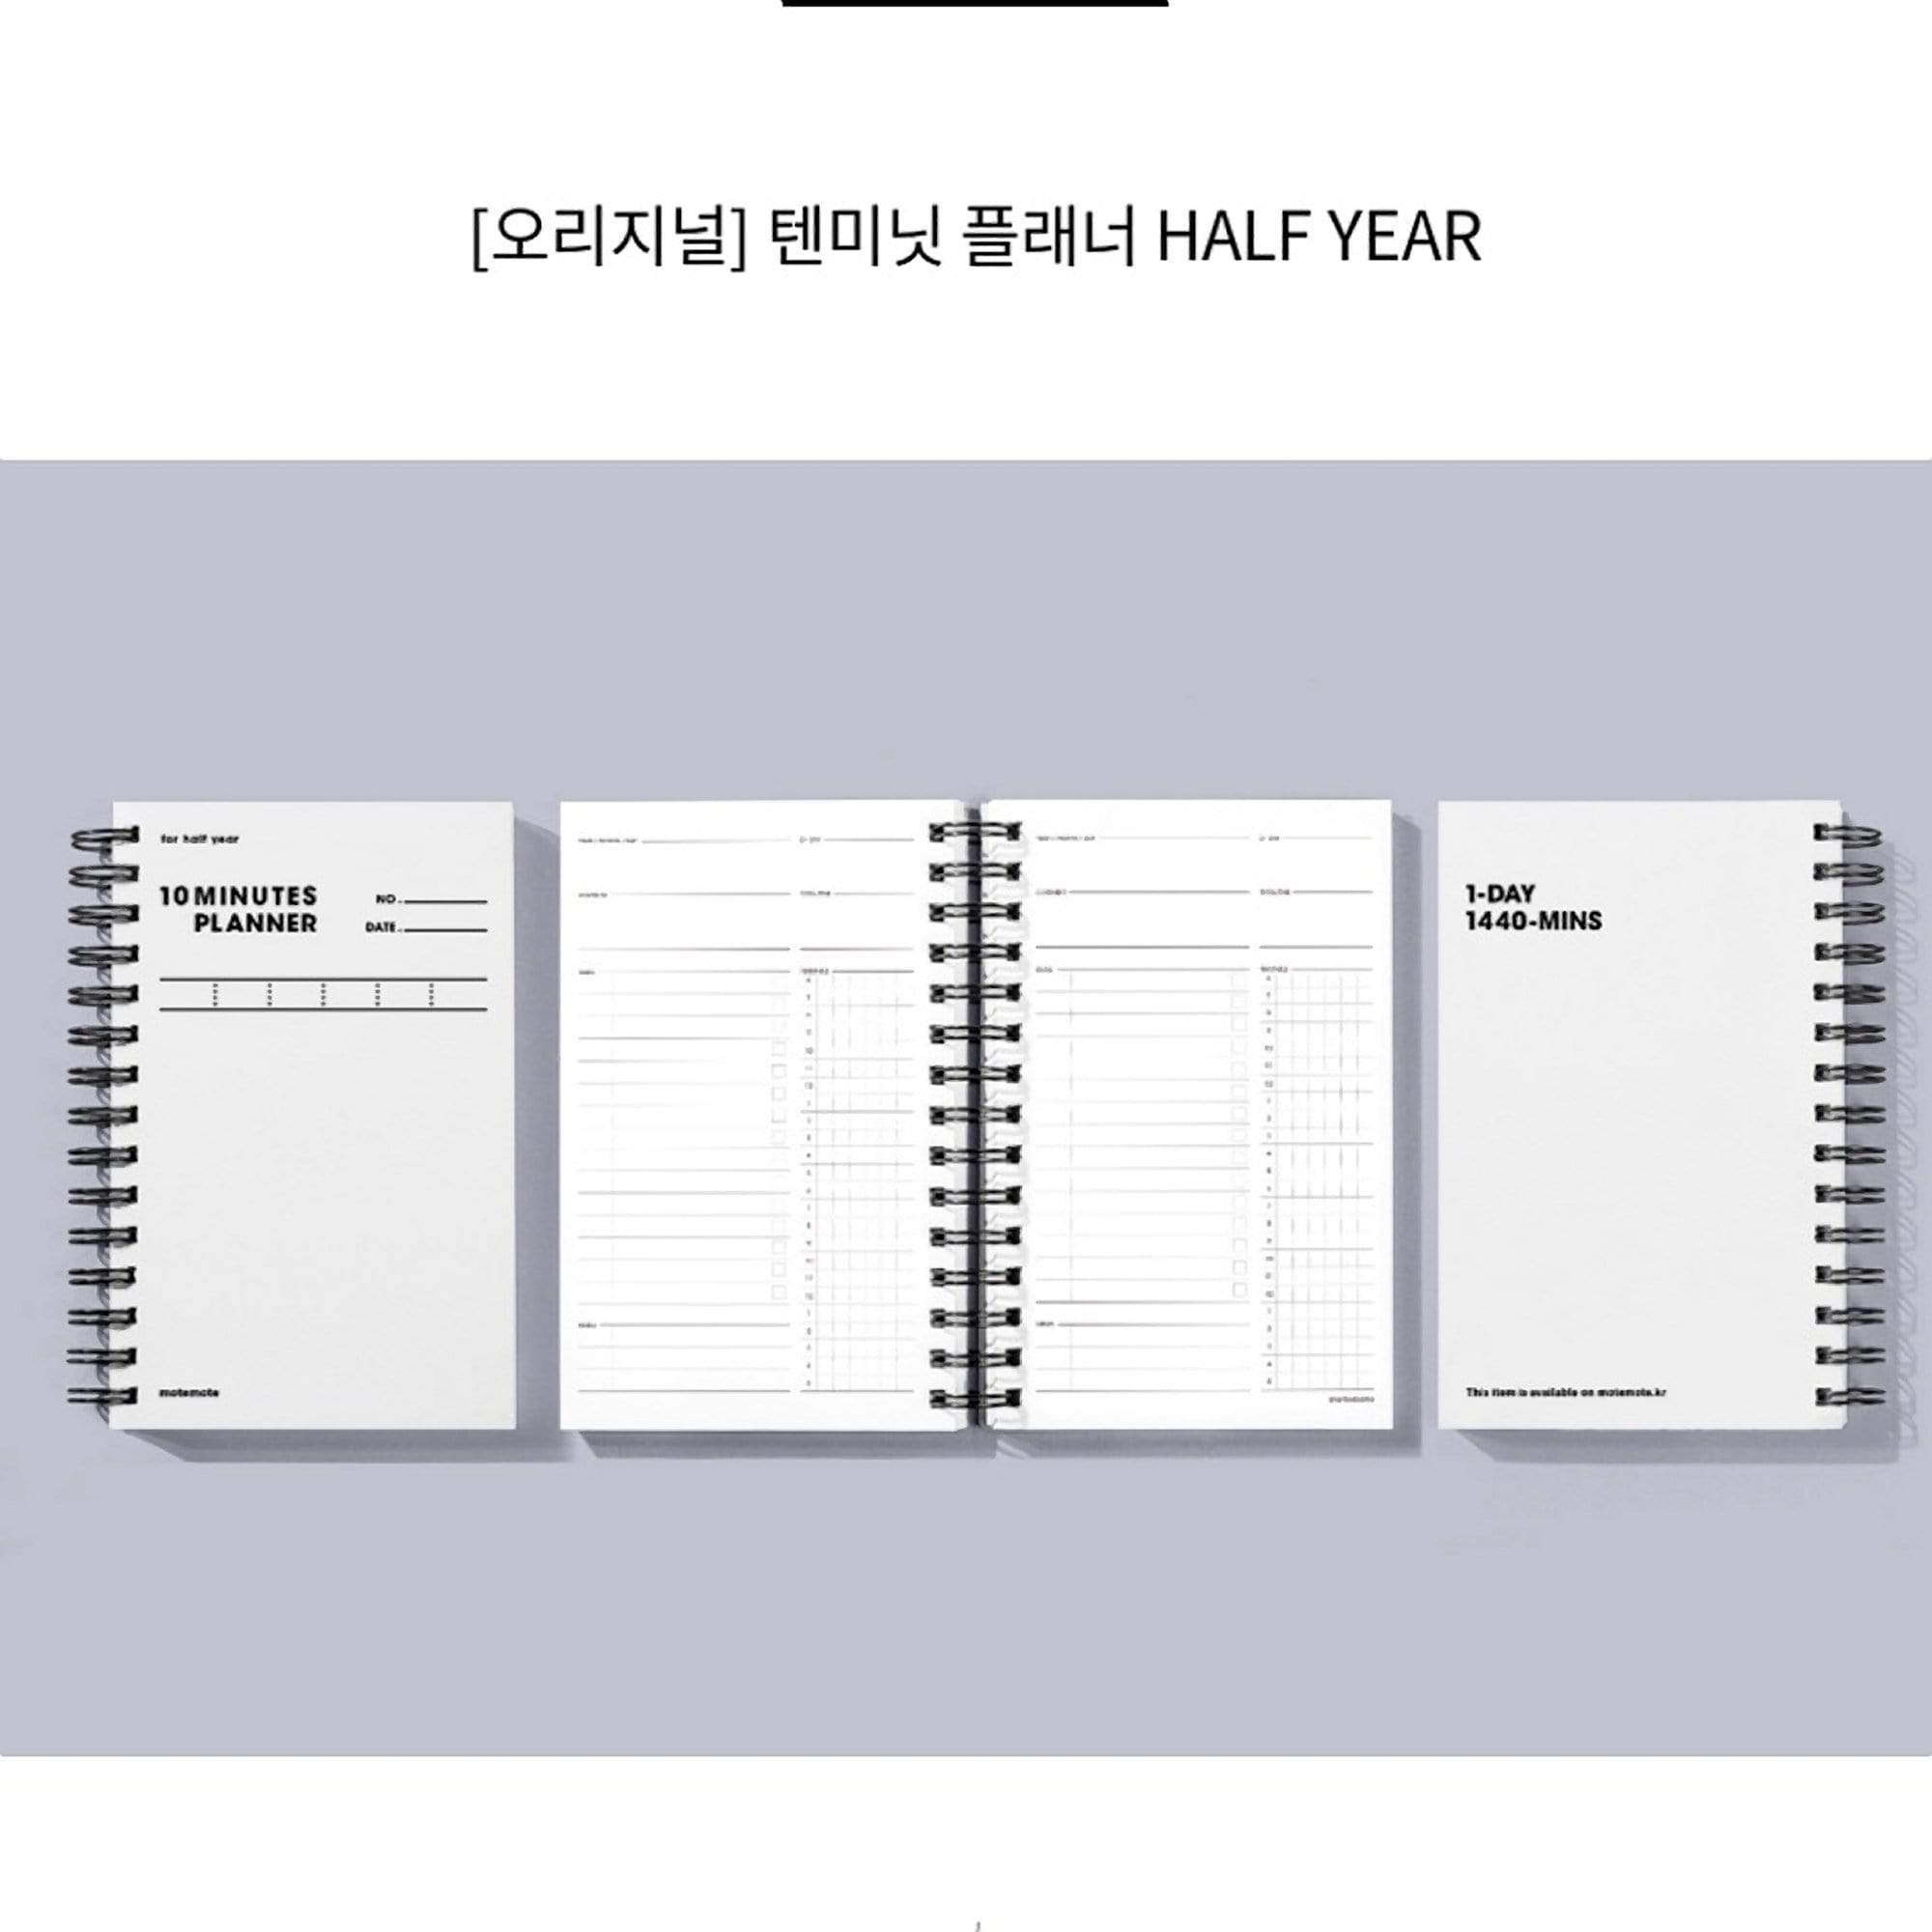 MOTEMOTE WHITE 10 Minute Planner | Half Year - USA located! - The Stationery Life!